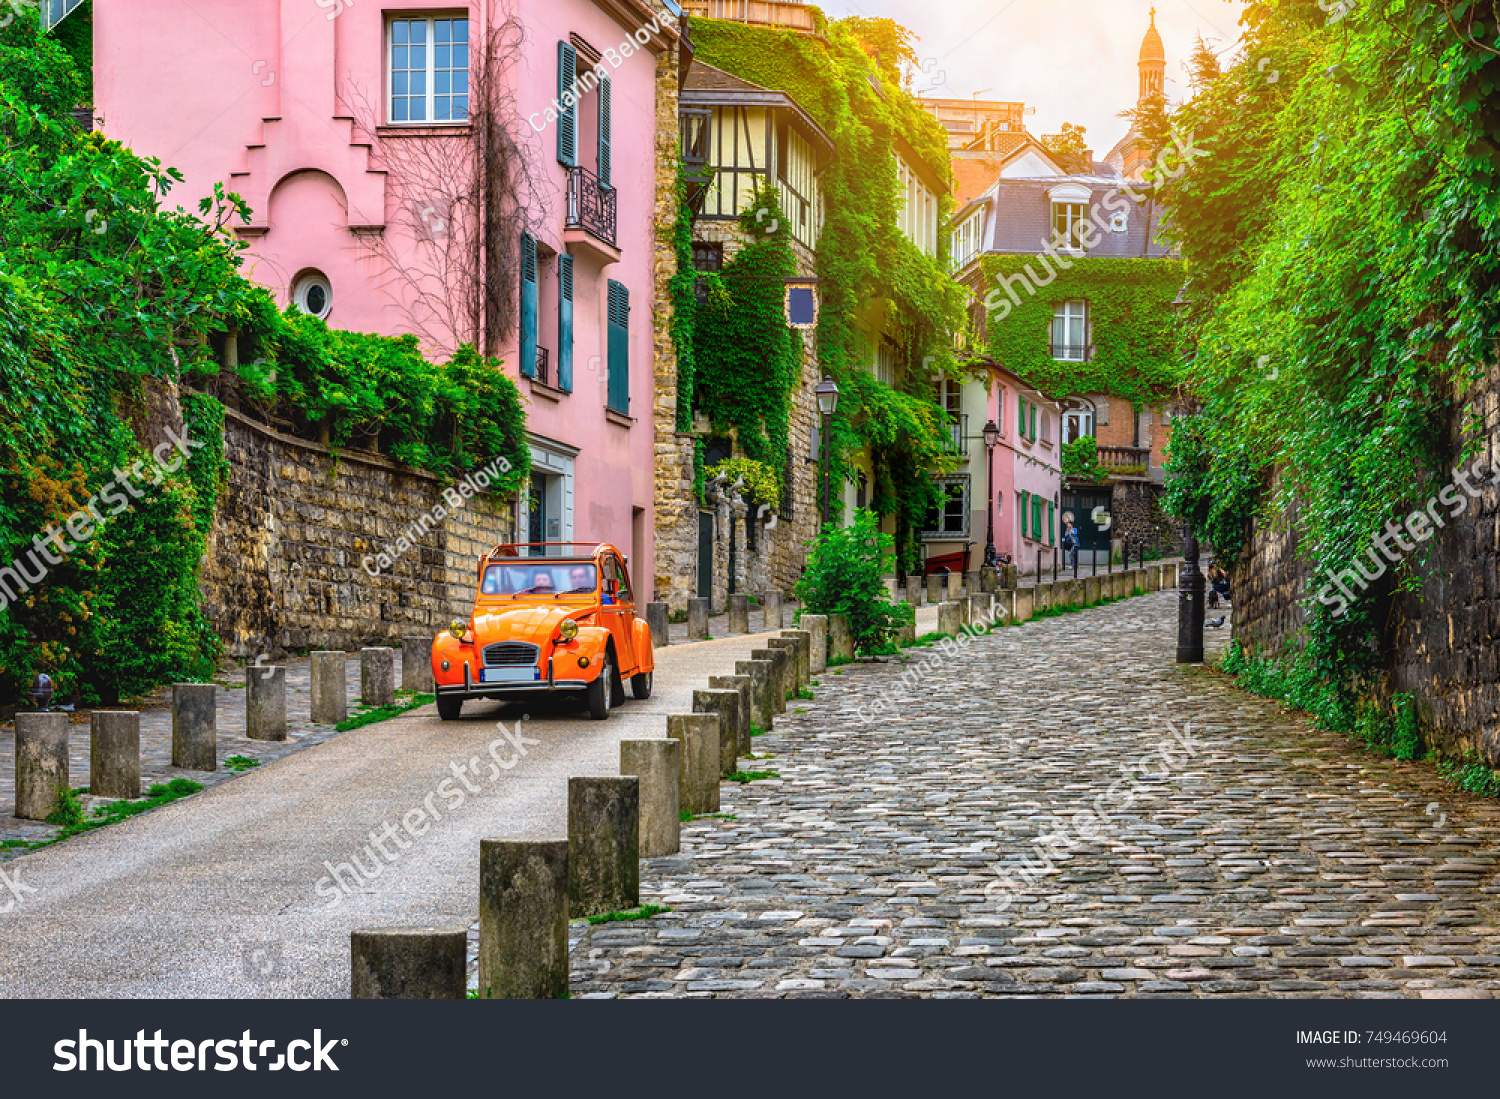 View of old street in quarter Montmartre in Paris, France. Cozy cityscape of Paris. Architecture and landmarks of Paris.  #749469604